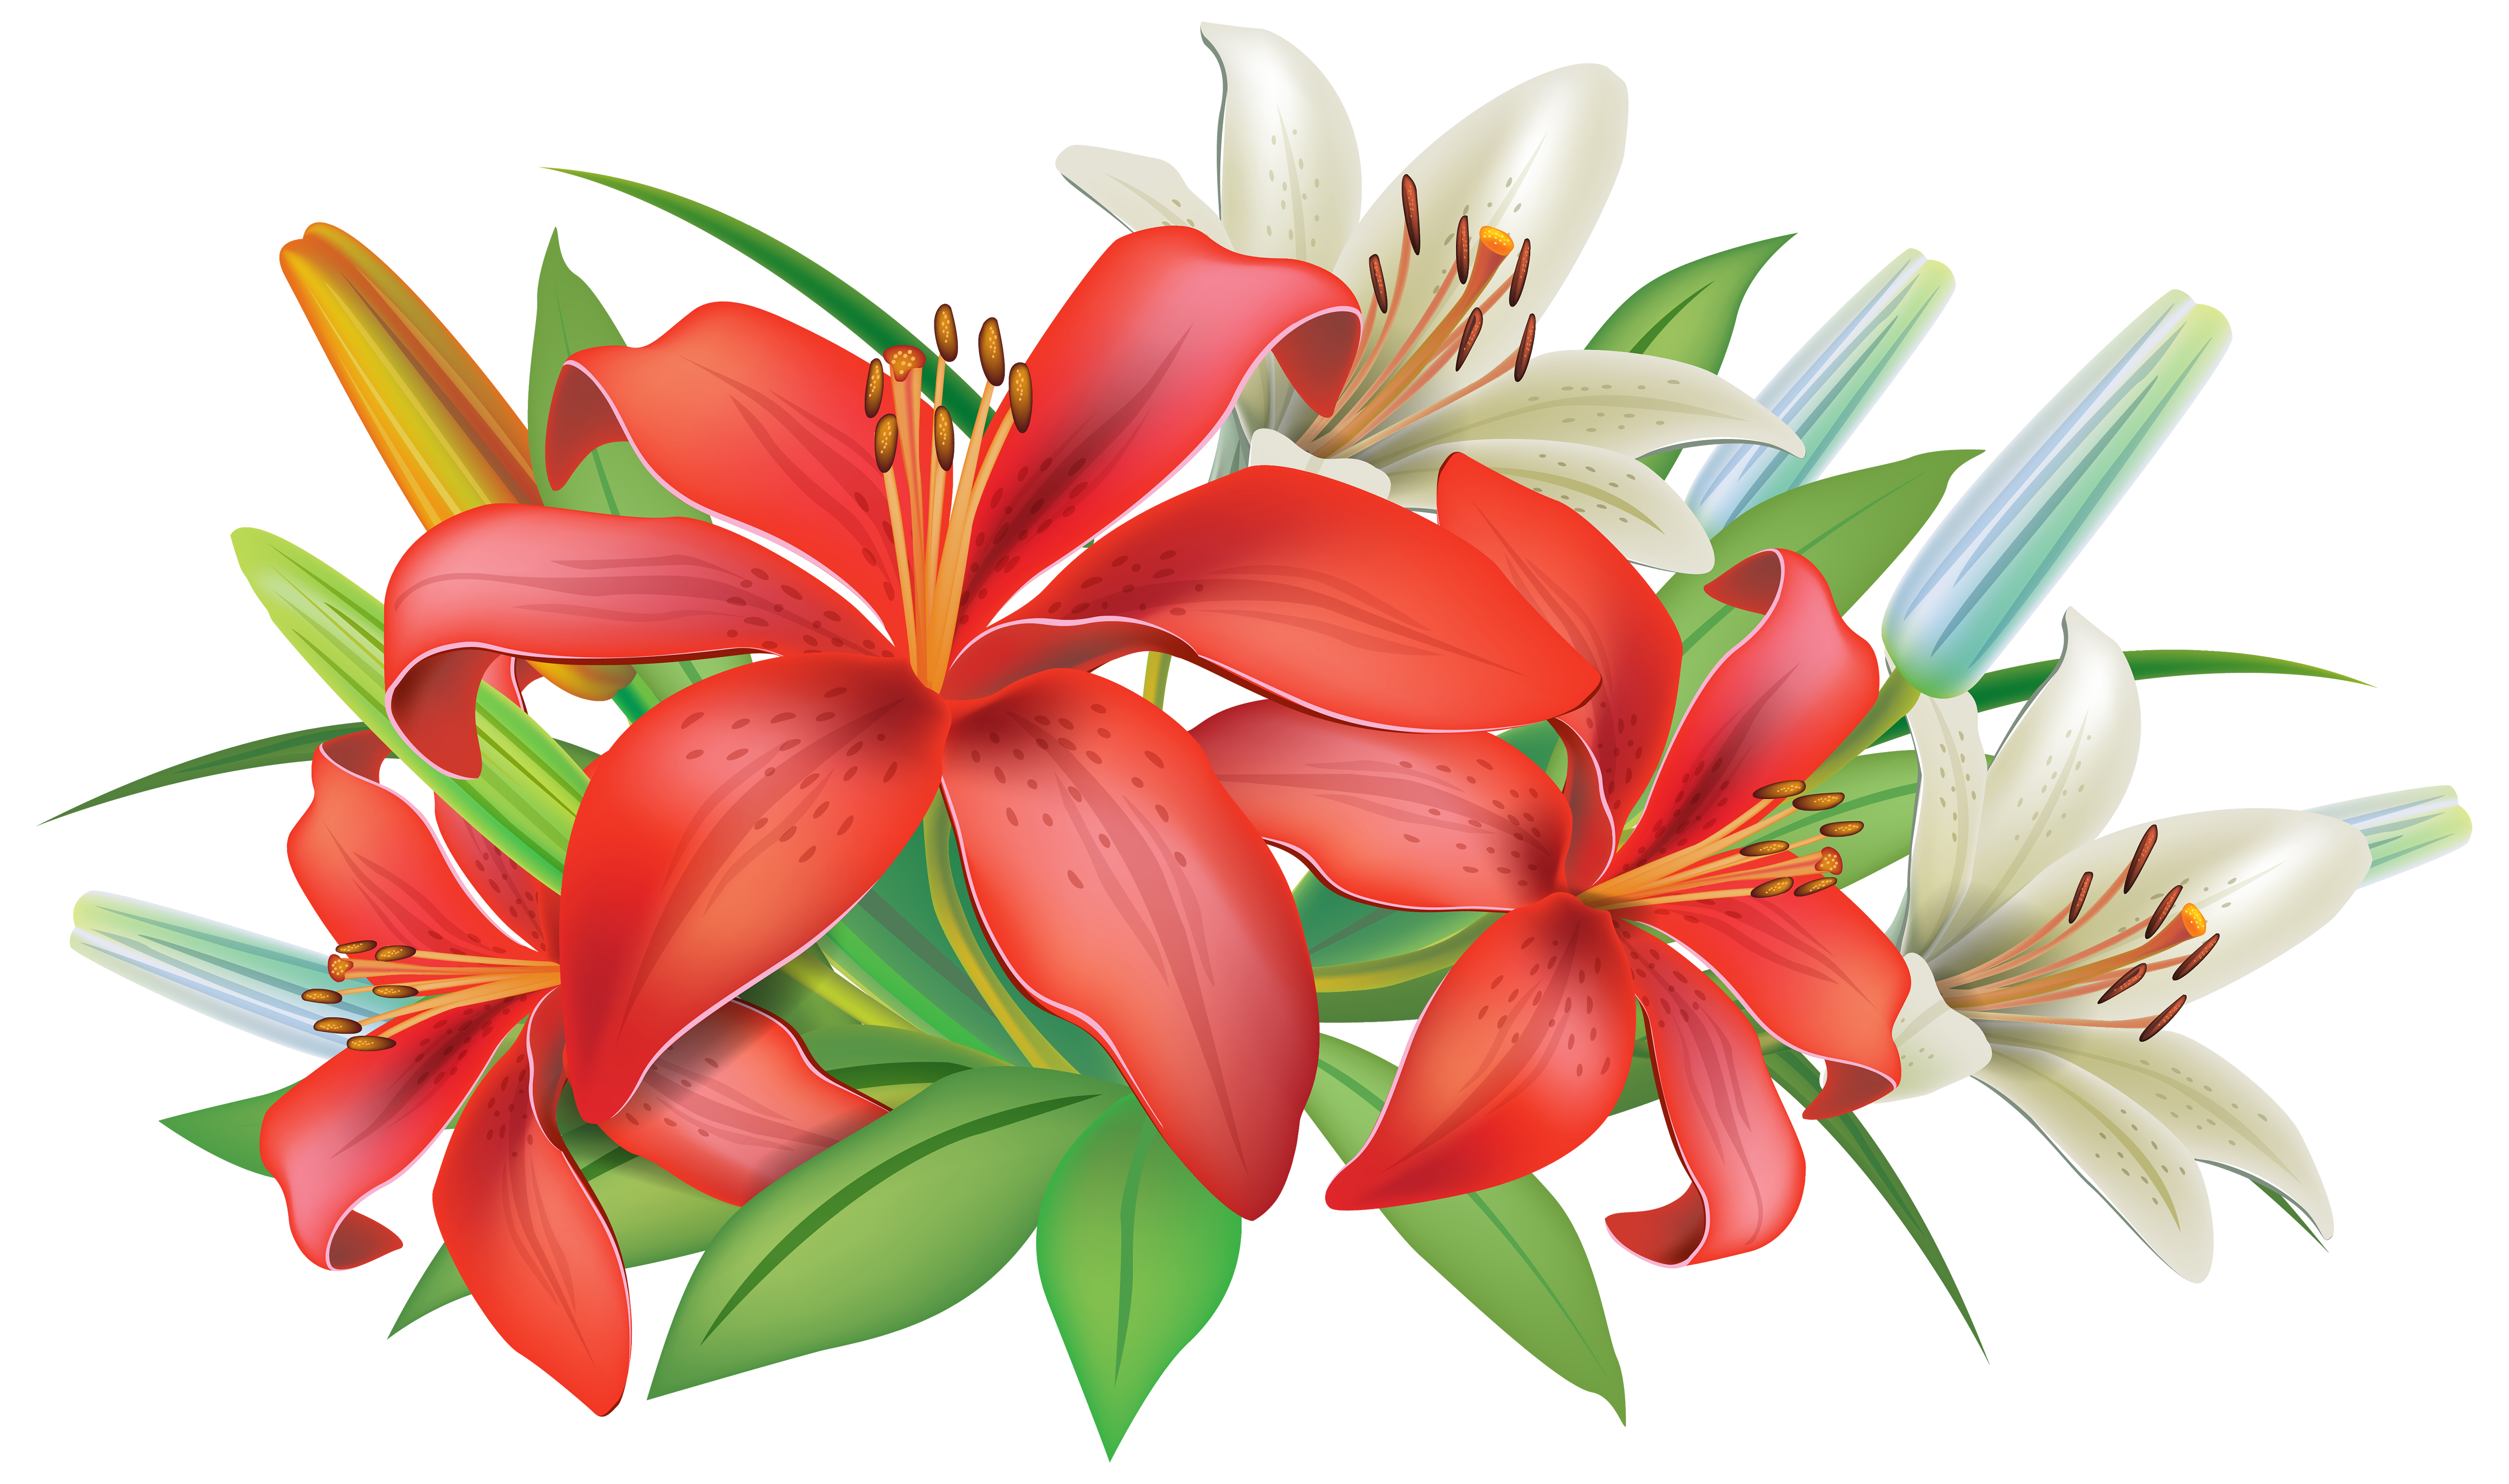 Red Lilies Flowers Decoration PNG Clipart Image.